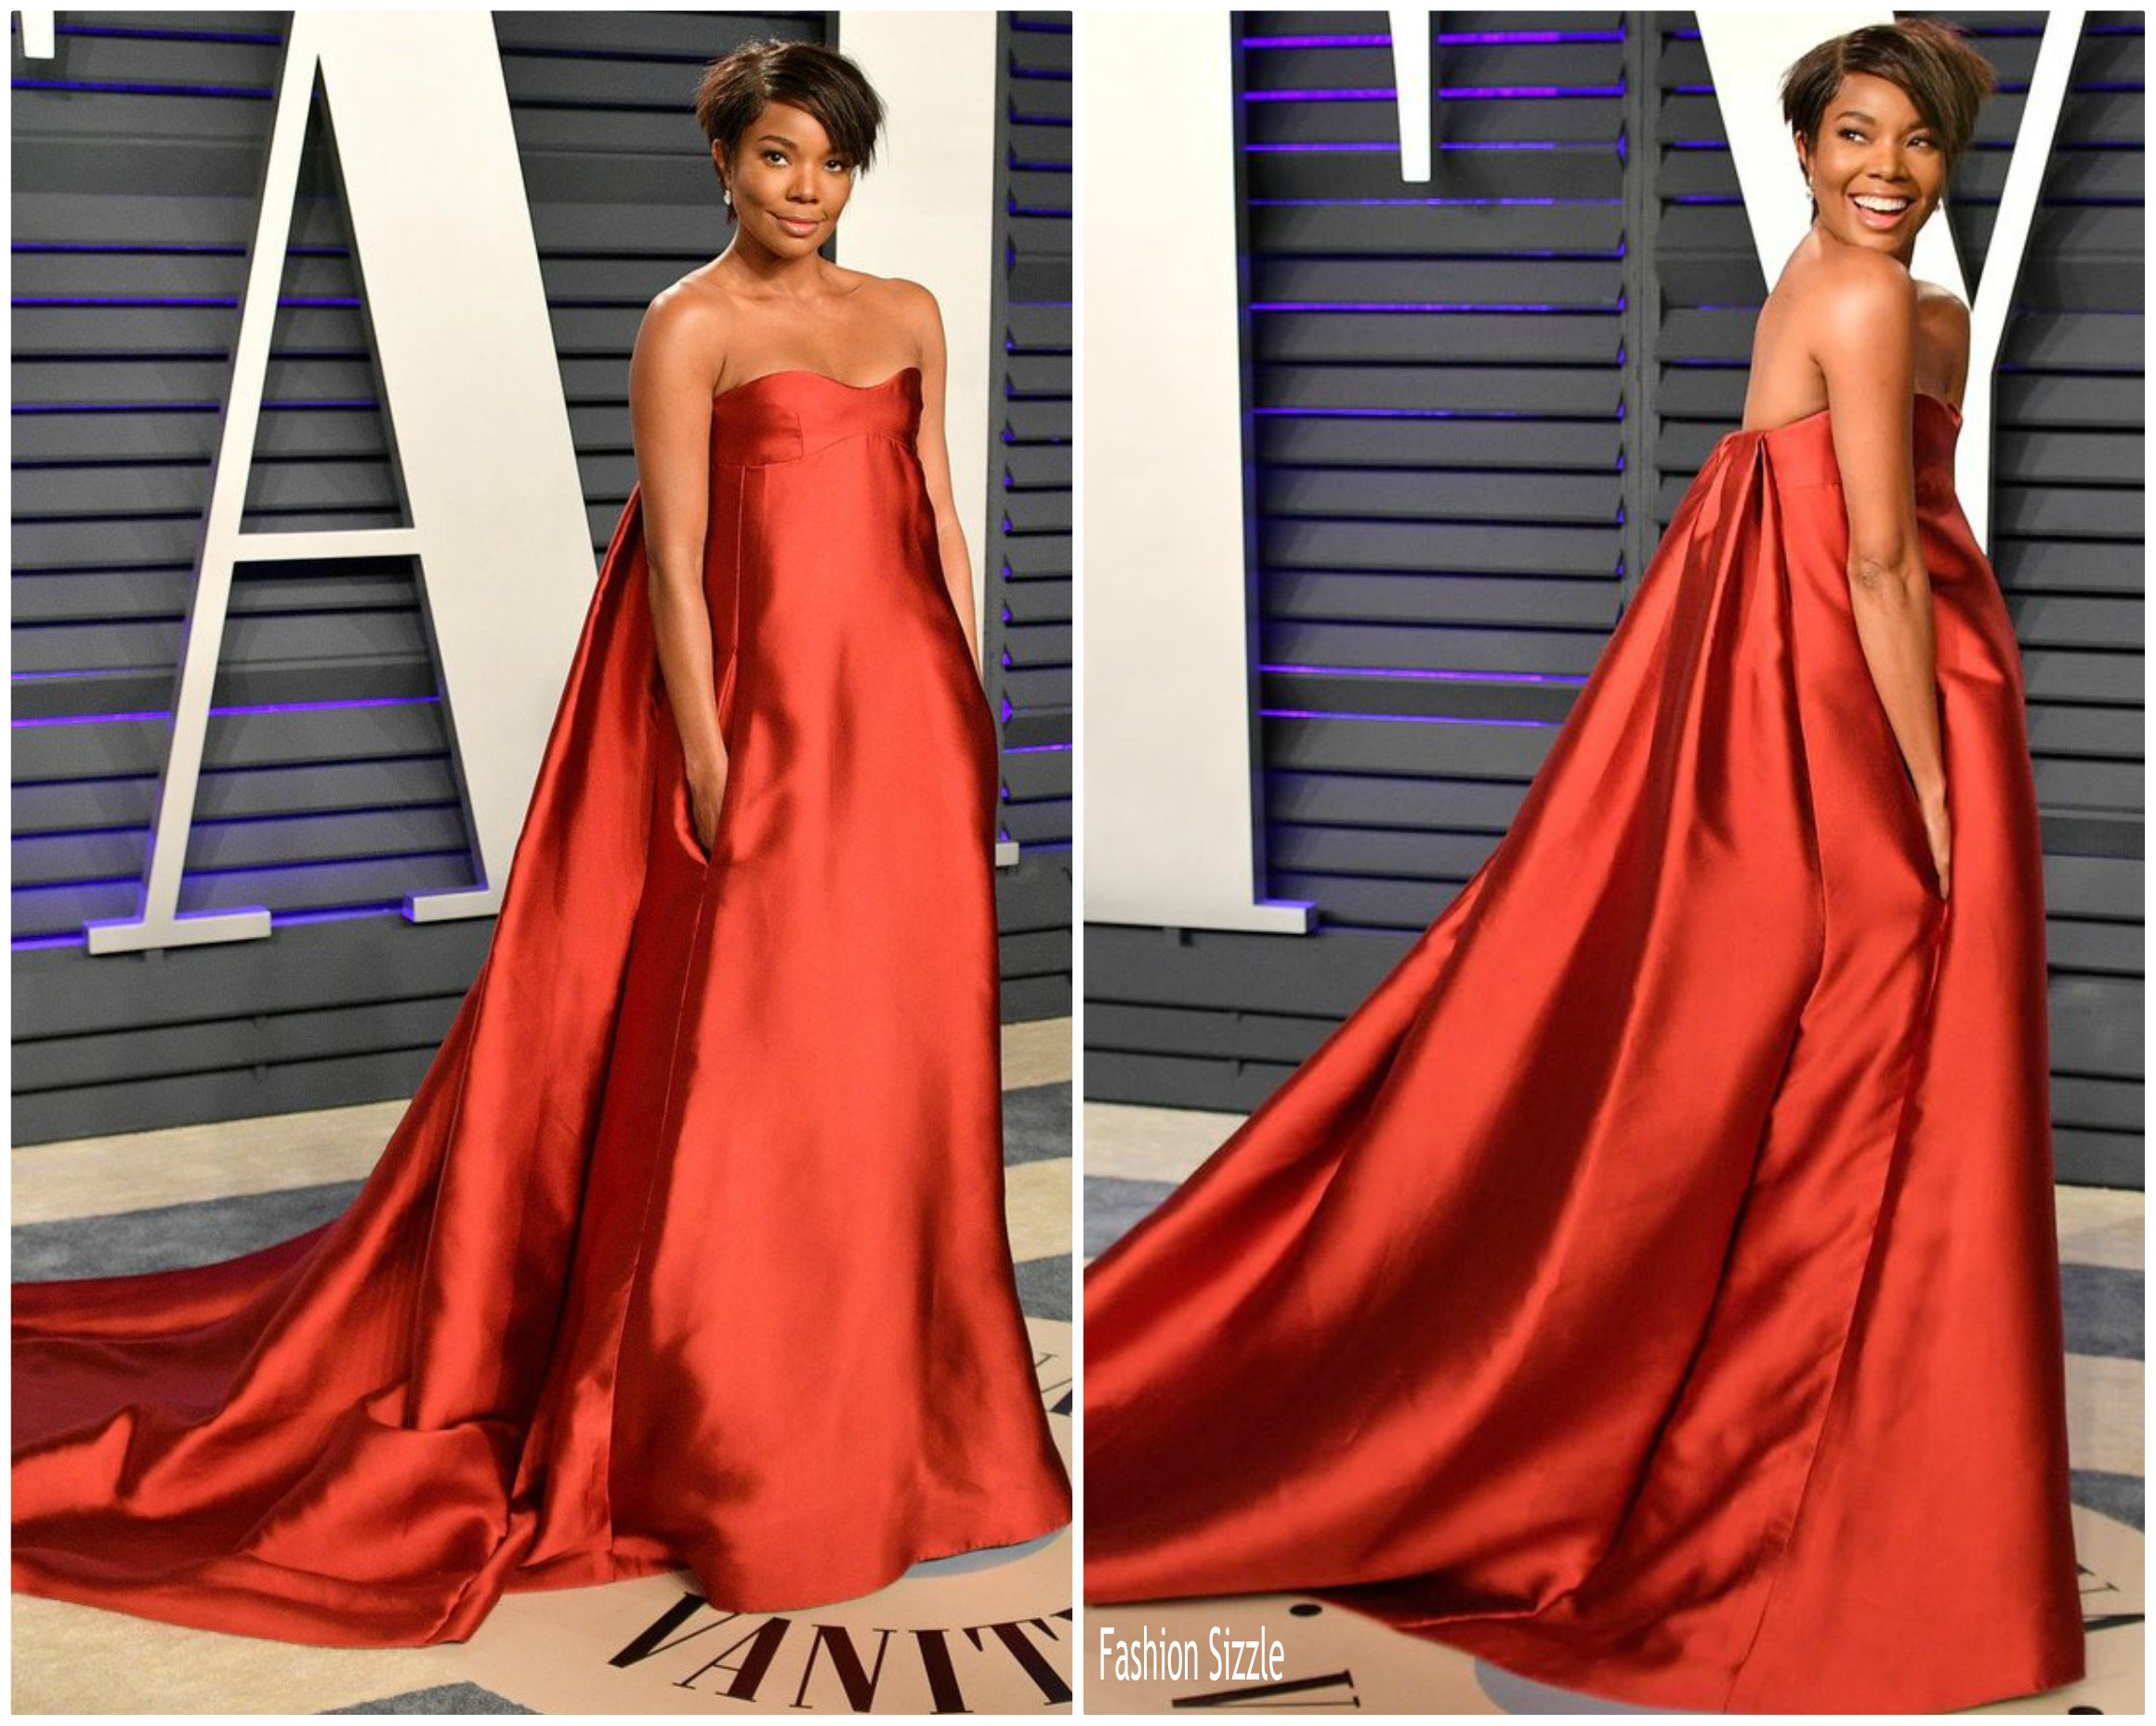 gabrielle-union-in-valentino-haute-couture-2019-vanity-fair-oscar-party